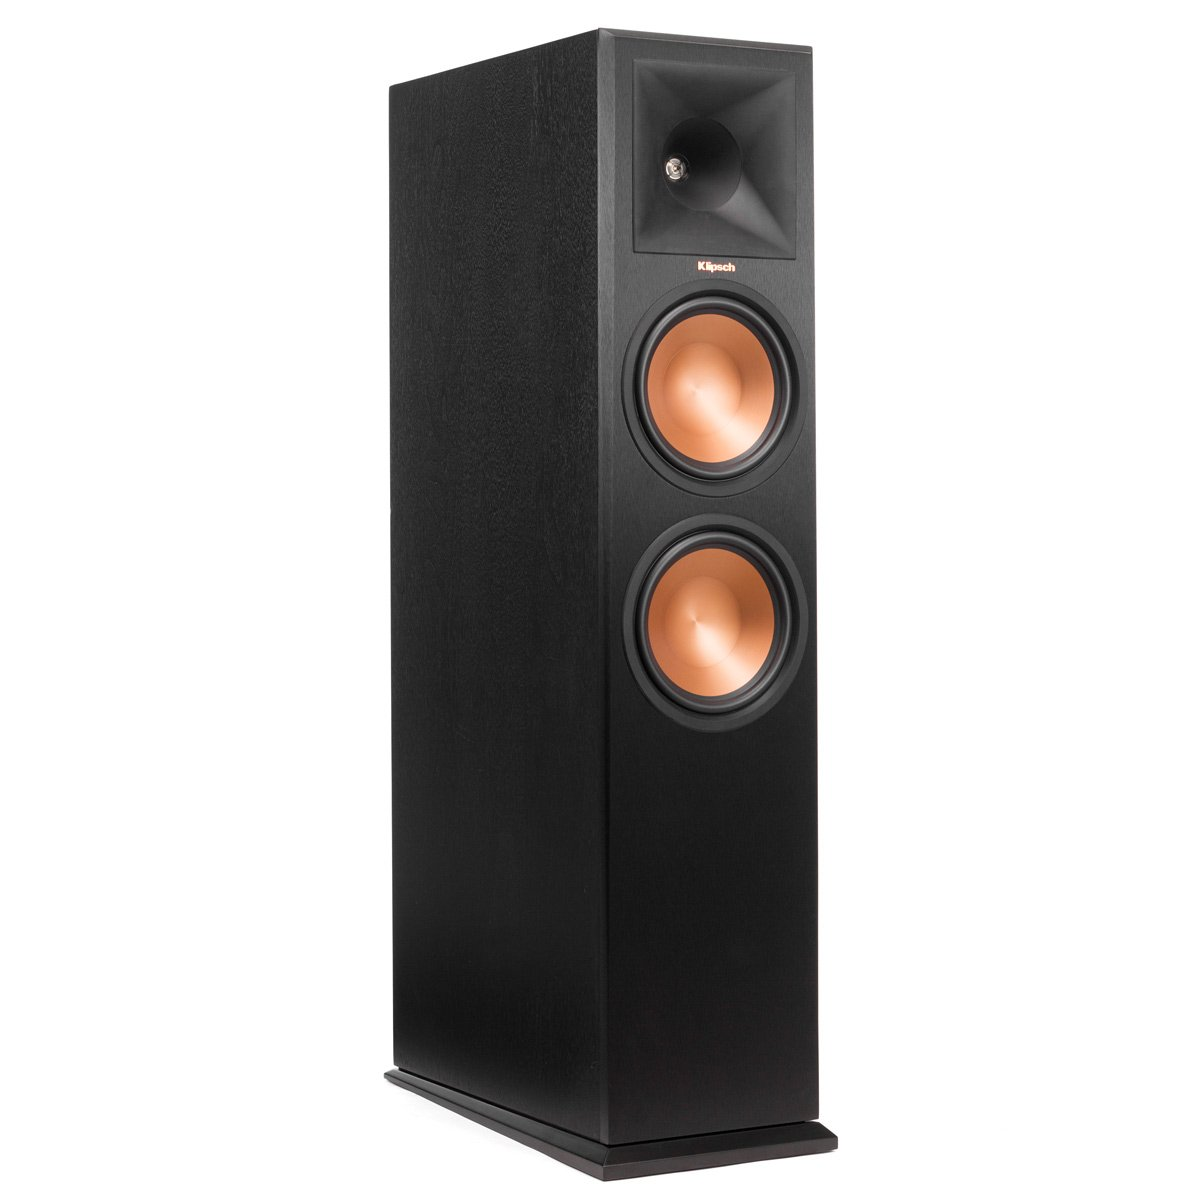 Klipsch RP-280FA Floorstanding Speaker with Built-In Dolby Atmos Height Channel - Each (Ebony Vinyl)